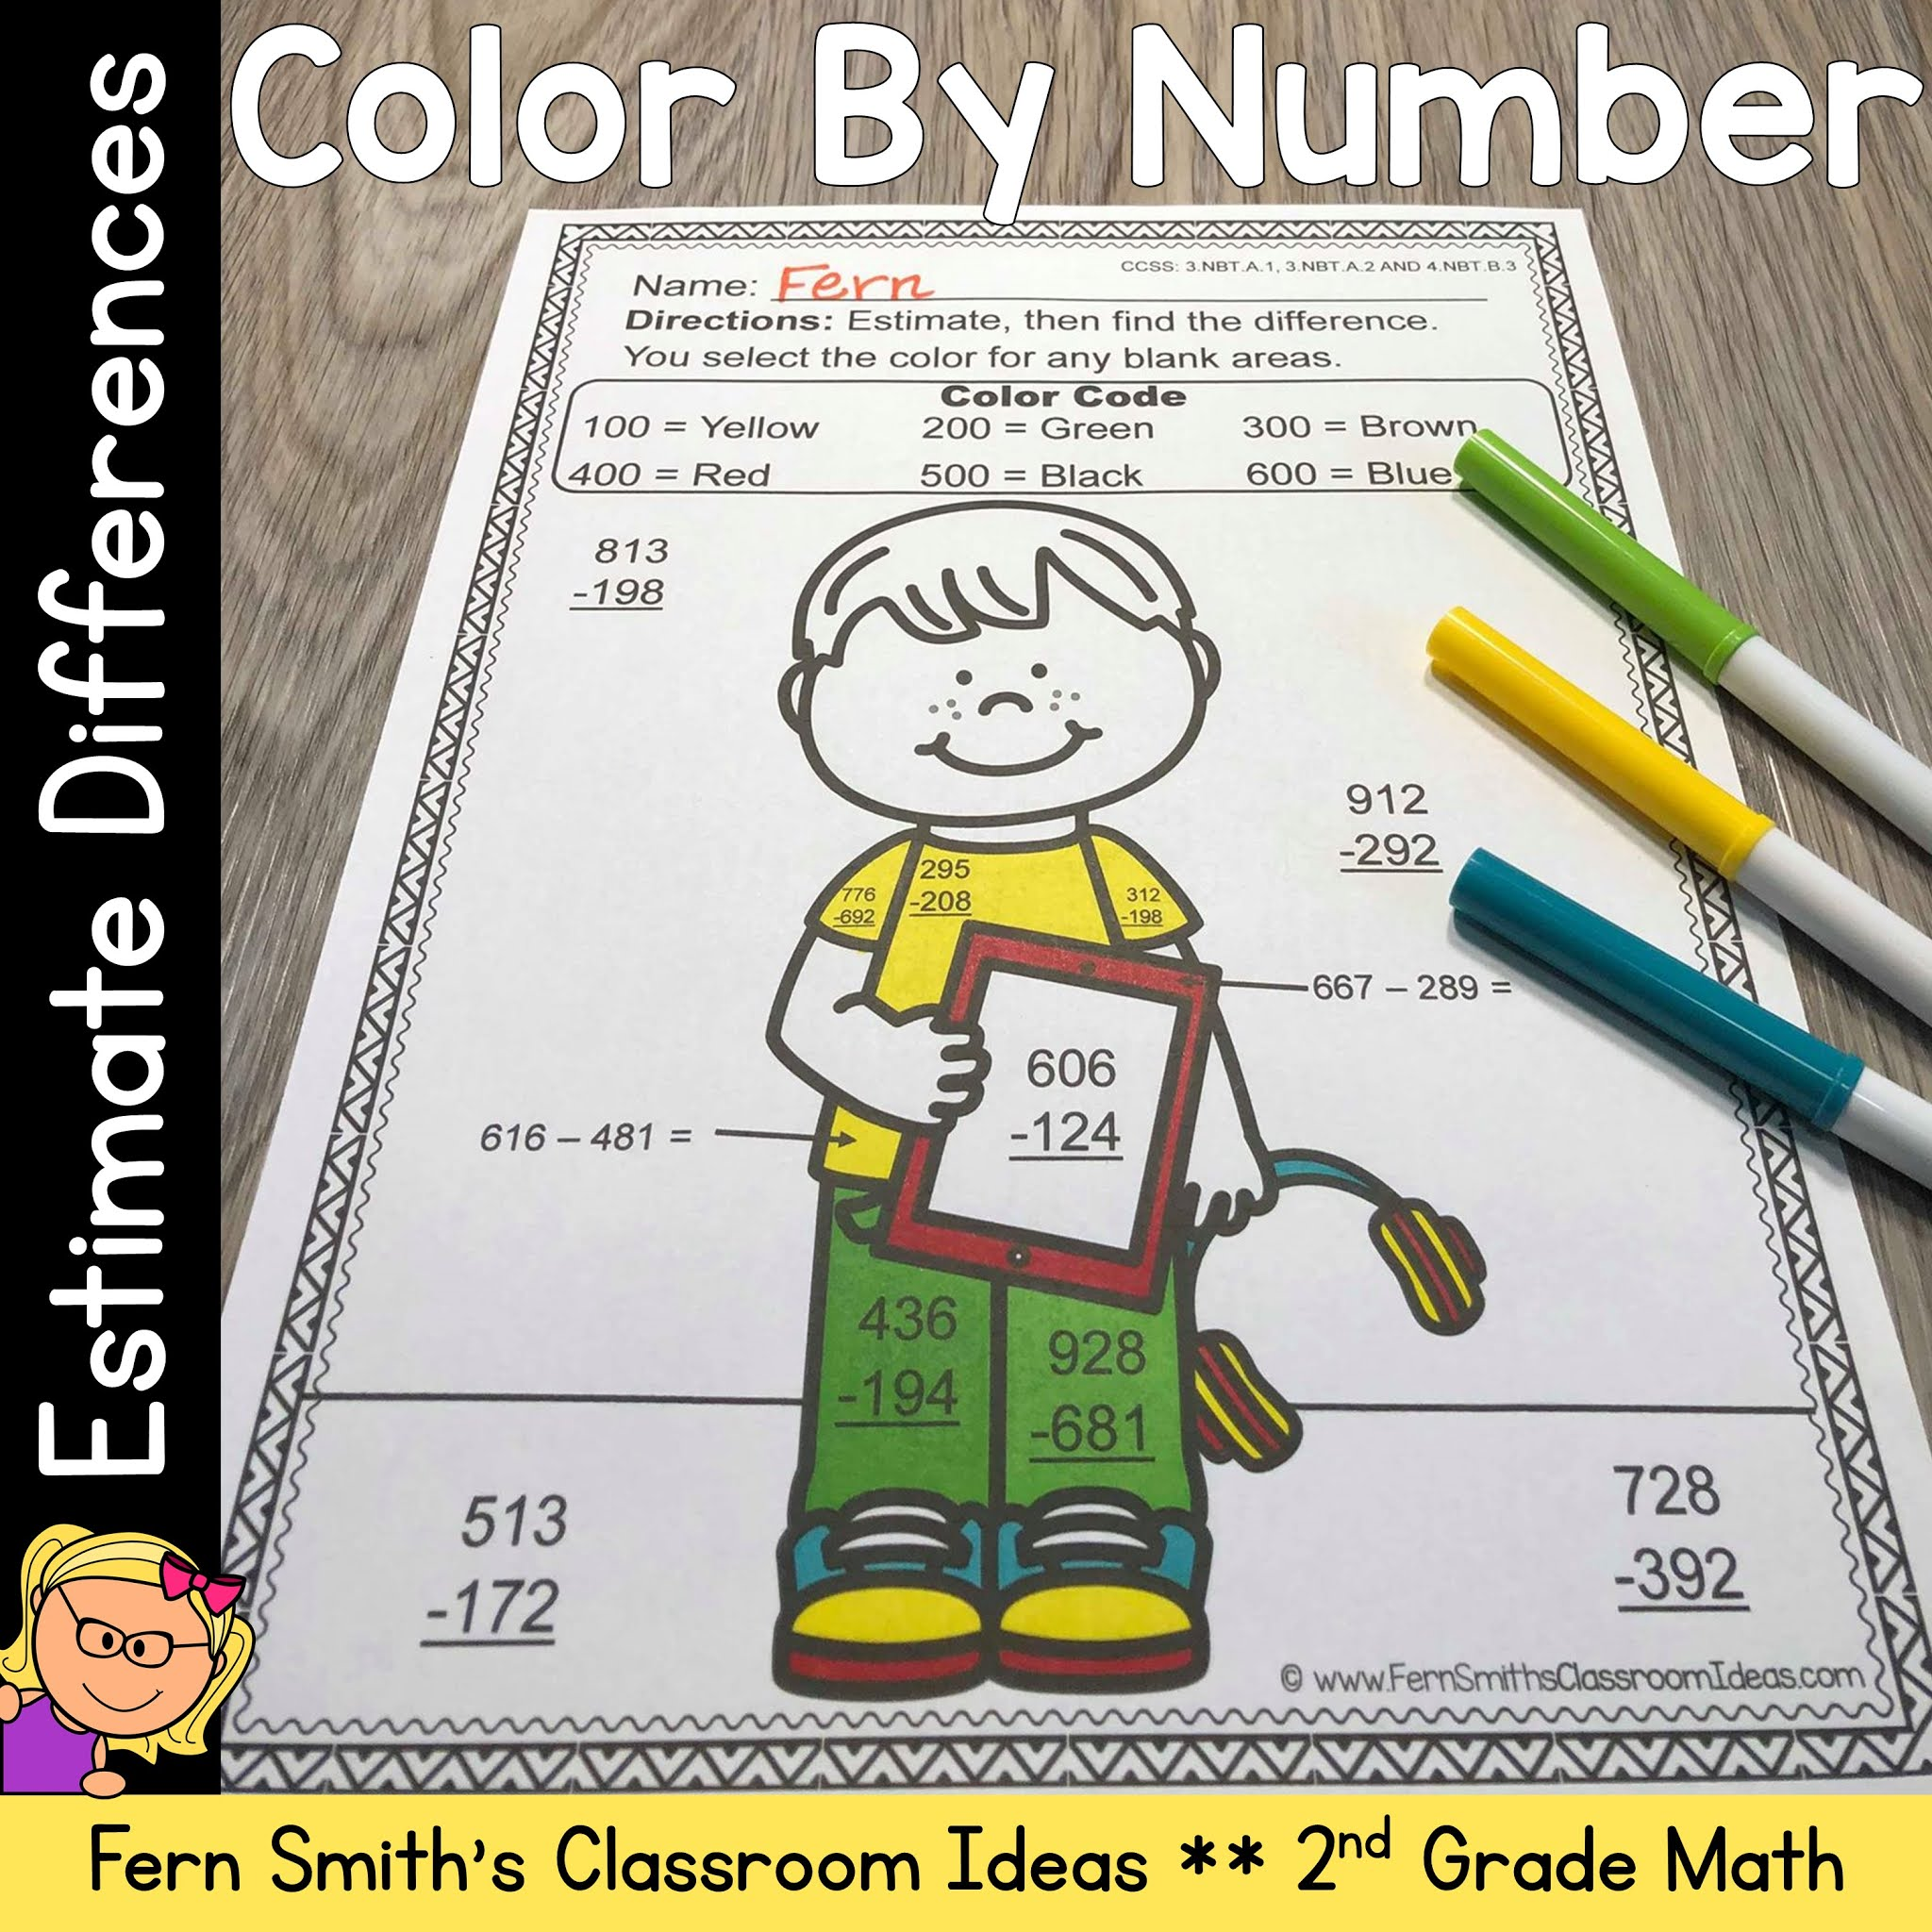 hight resolution of Are You Getting Ready to Start Teaching How to Estimate Differences? - Fern  Smith's Classroom Ideas!